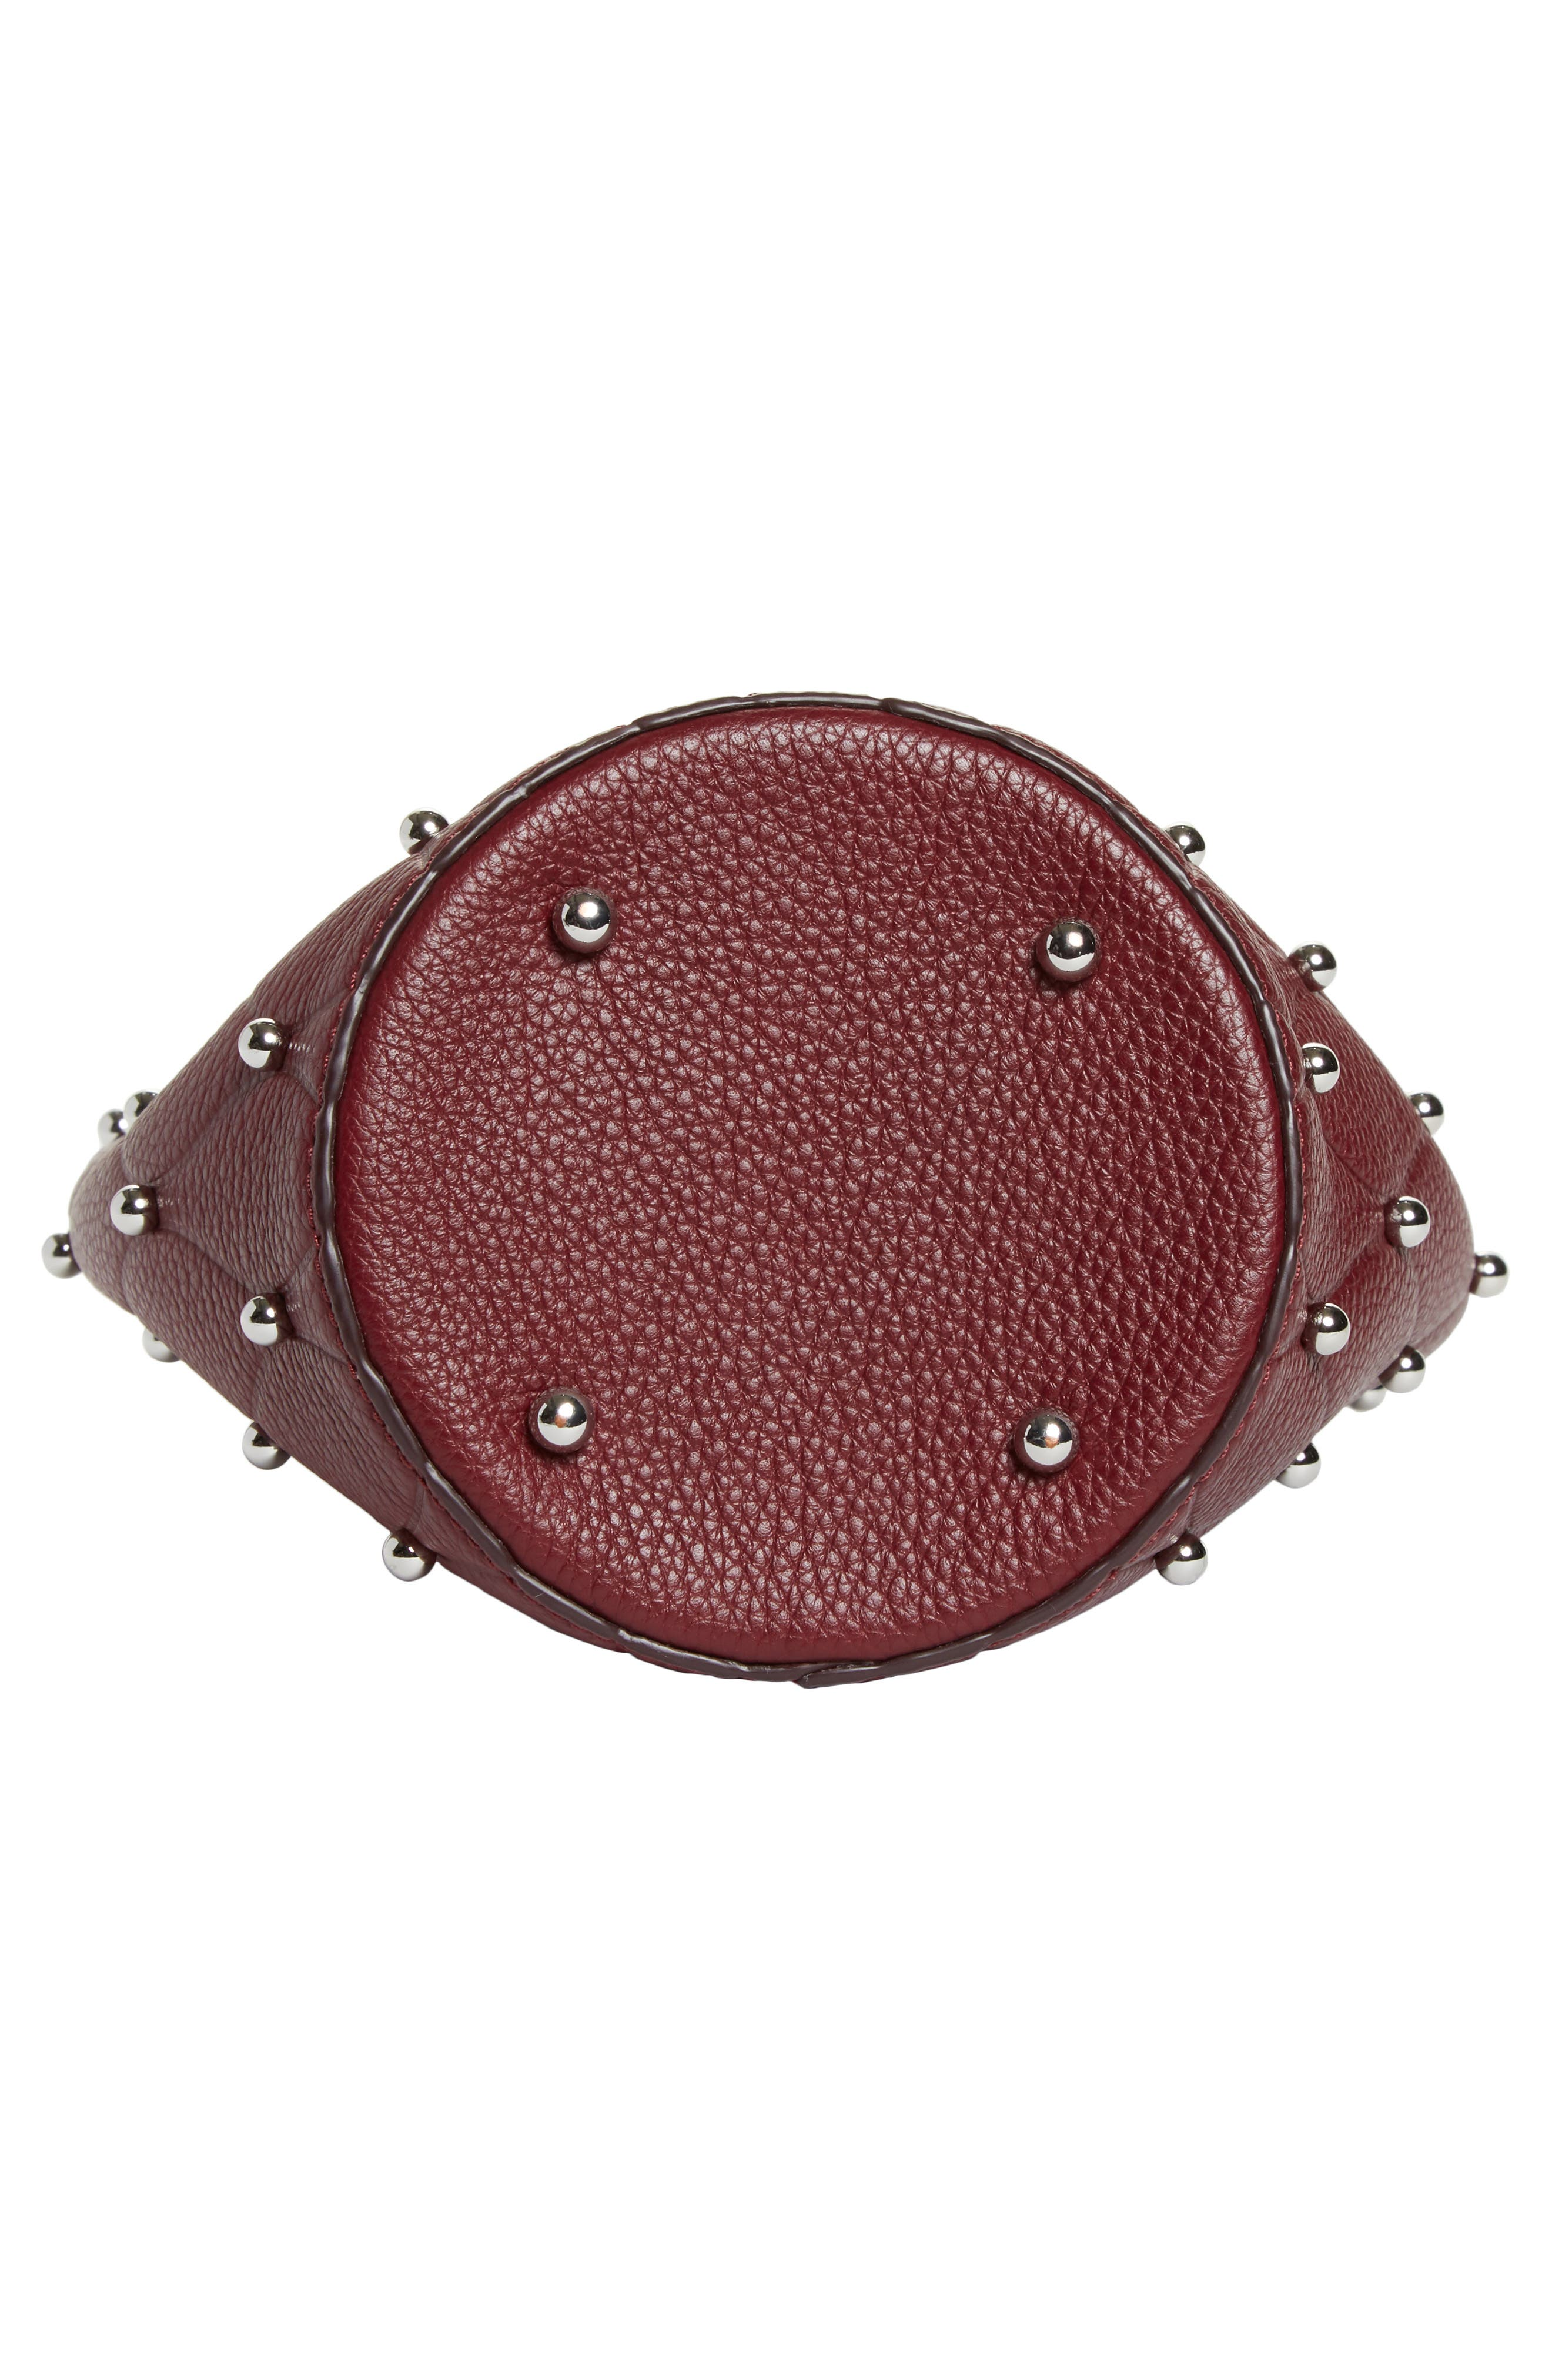 Mini Roxy Studded Leather Bucket Bag,                             Alternate thumbnail 6, color,                             616